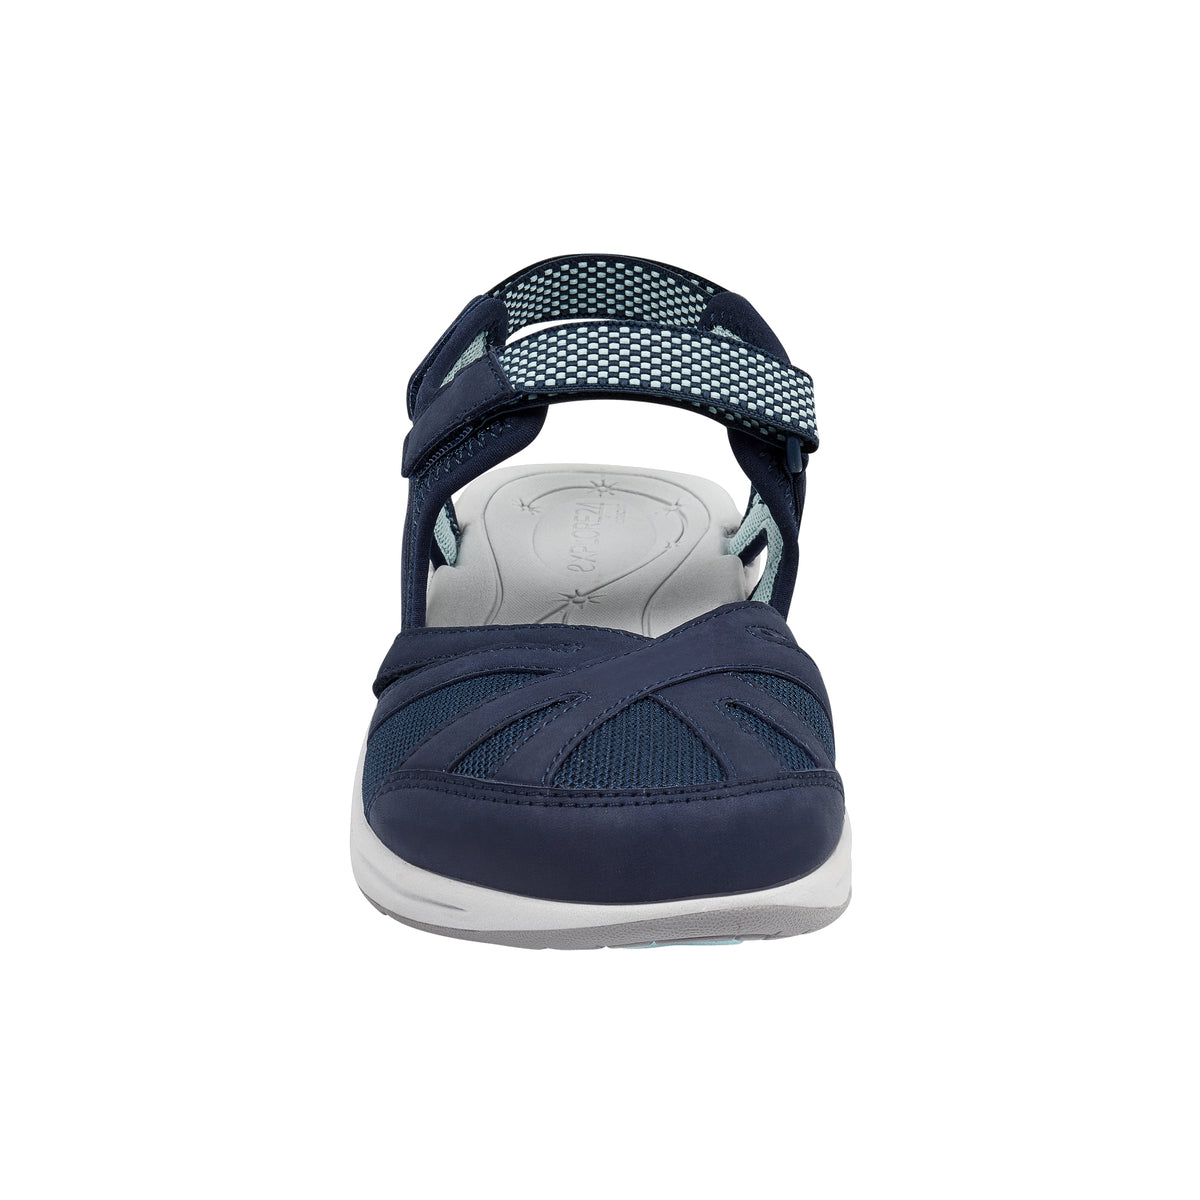 CHILD_SPLASH_NUBUCK-MBL01